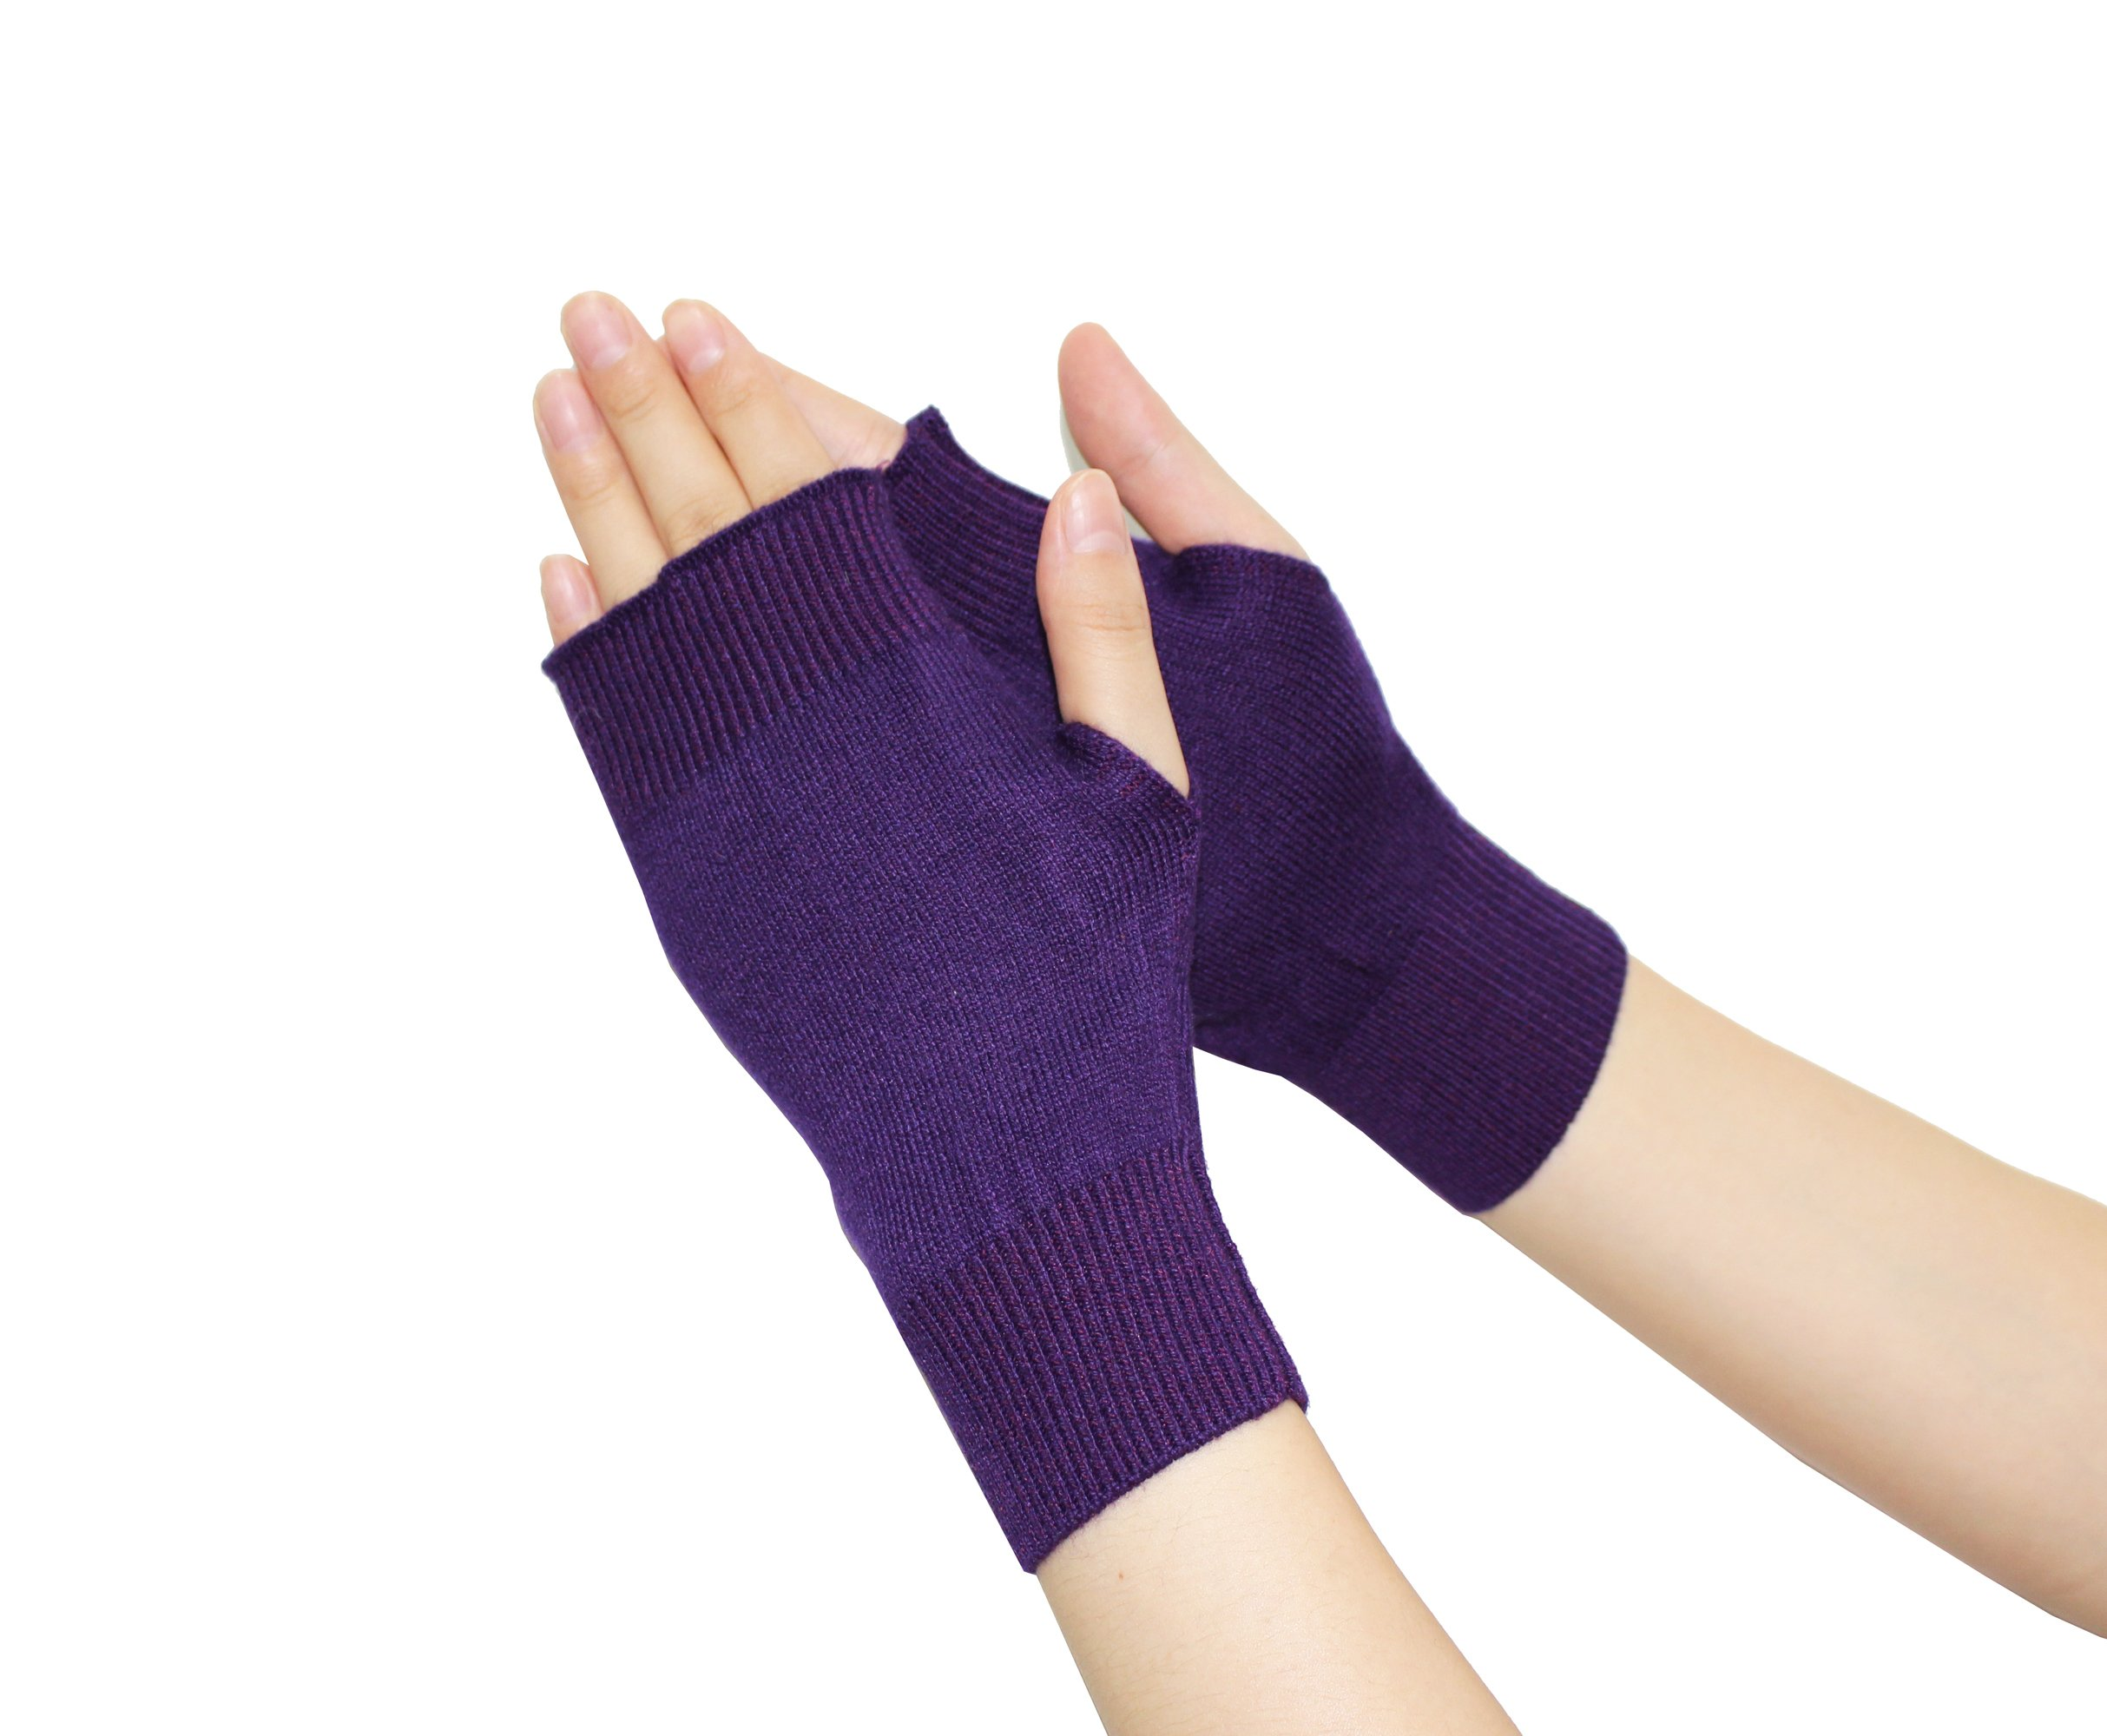 Olyer Winter Warmer Gloves Stretchy Knitted Cashmere Fingerless (Purple)